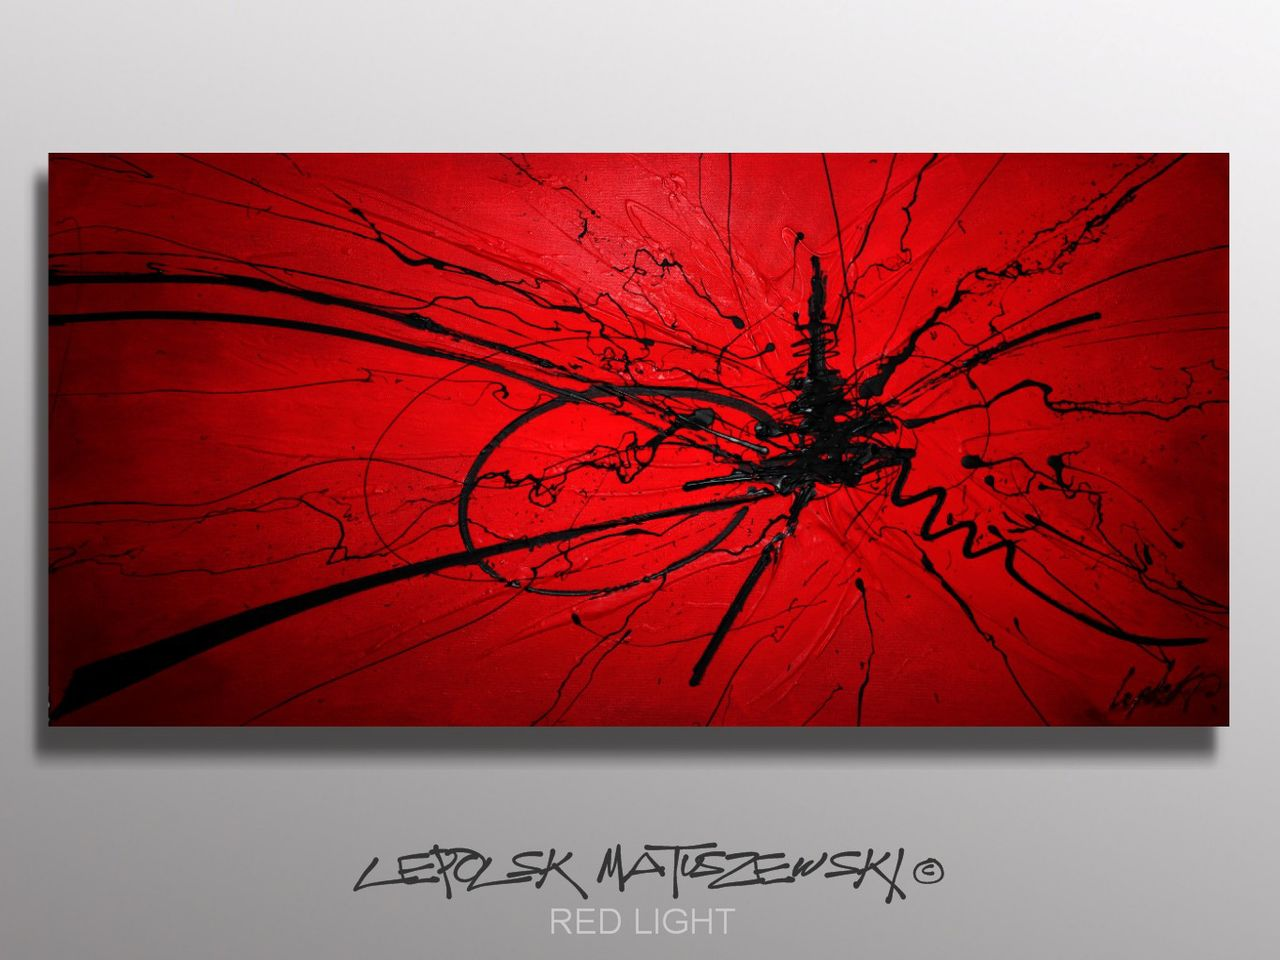 MISTER K  - Lepolsk Matuszewski RED LIGHT   Expressionnisme abstrait contemporain